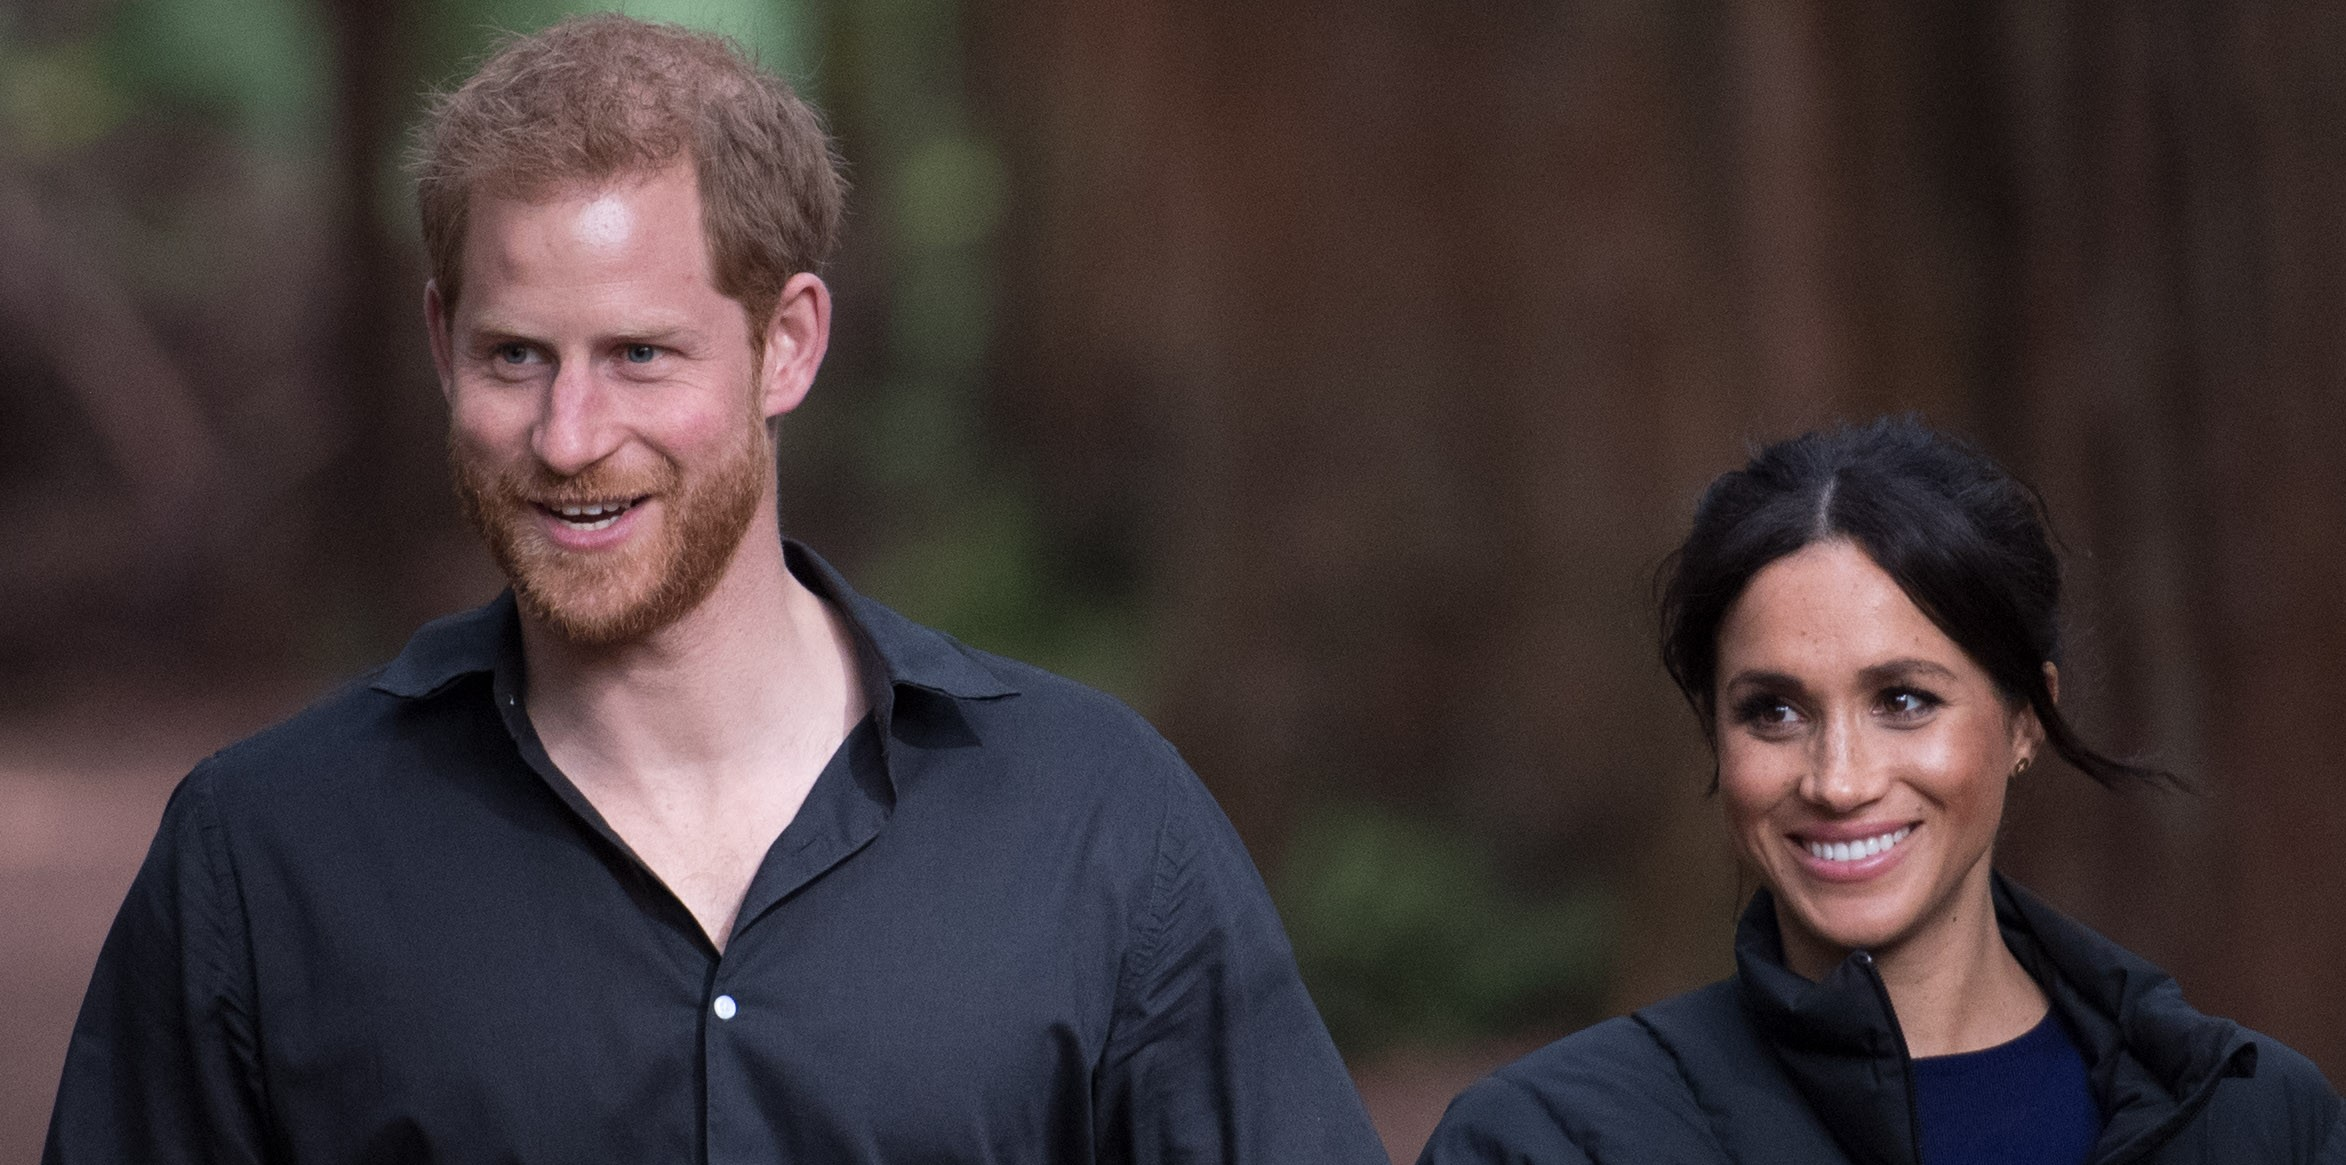 Prince Harry 'undergoes £50 beauty treatment with wife Meghan'